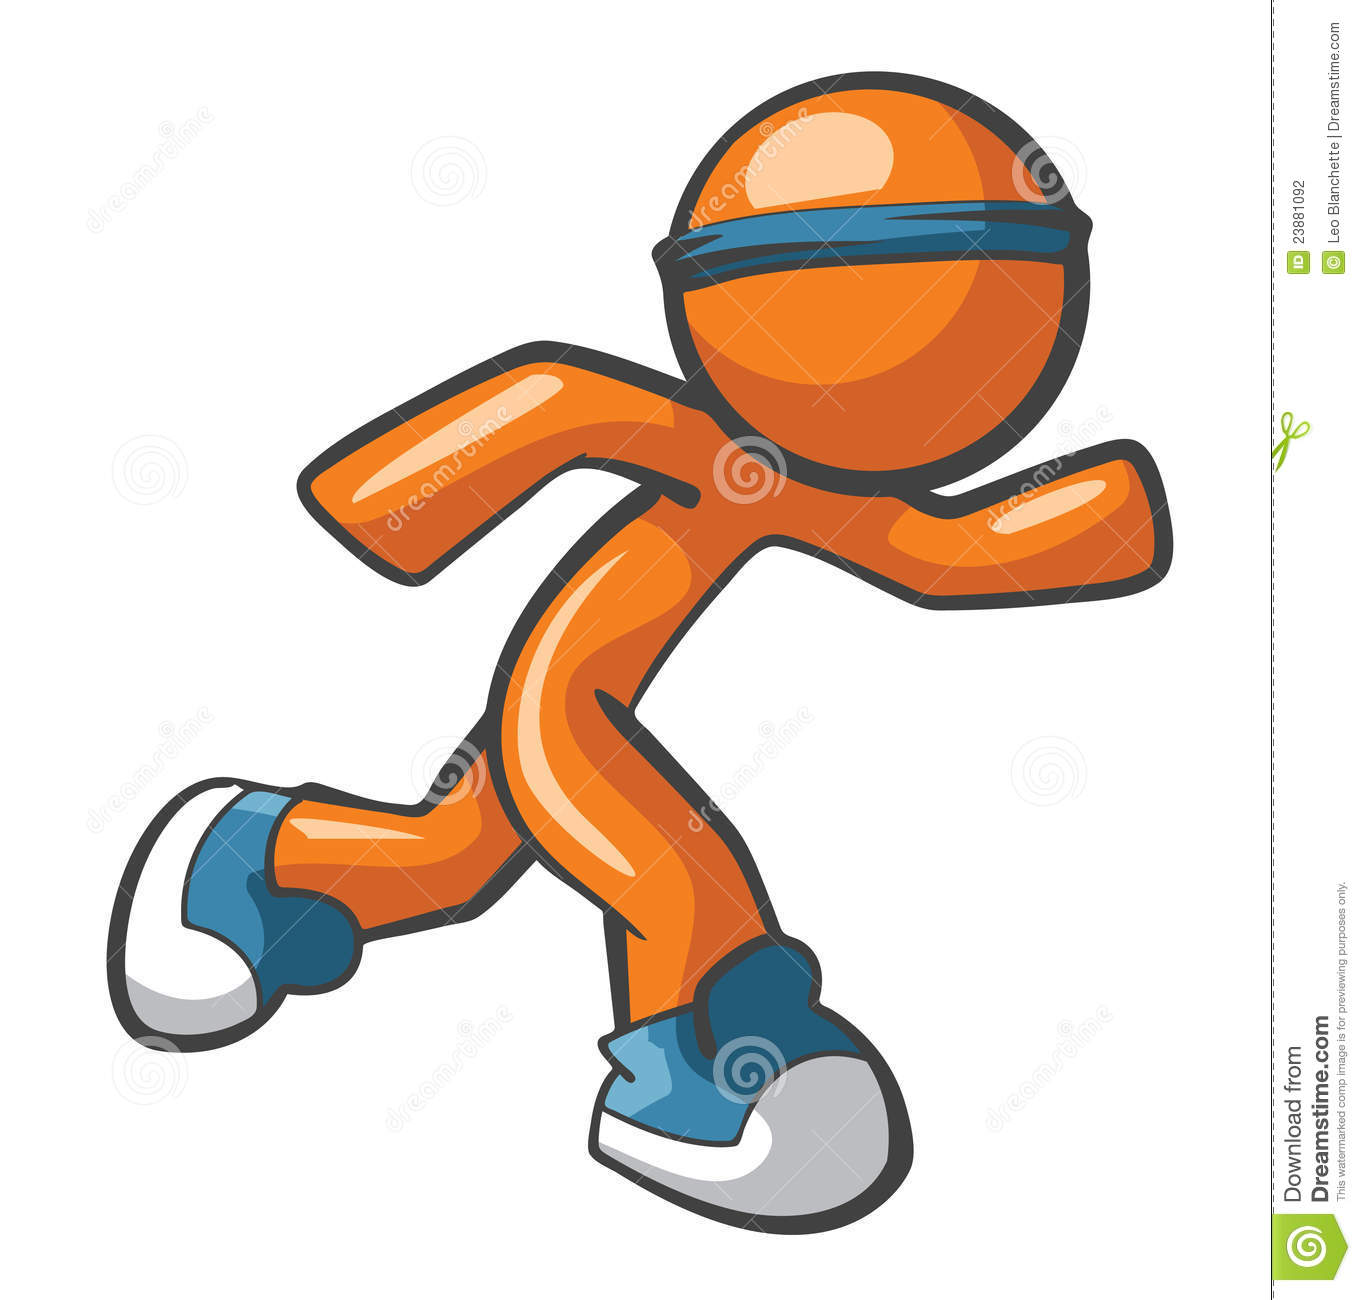 1361x1300 Sneakers Clipart Walking Foot